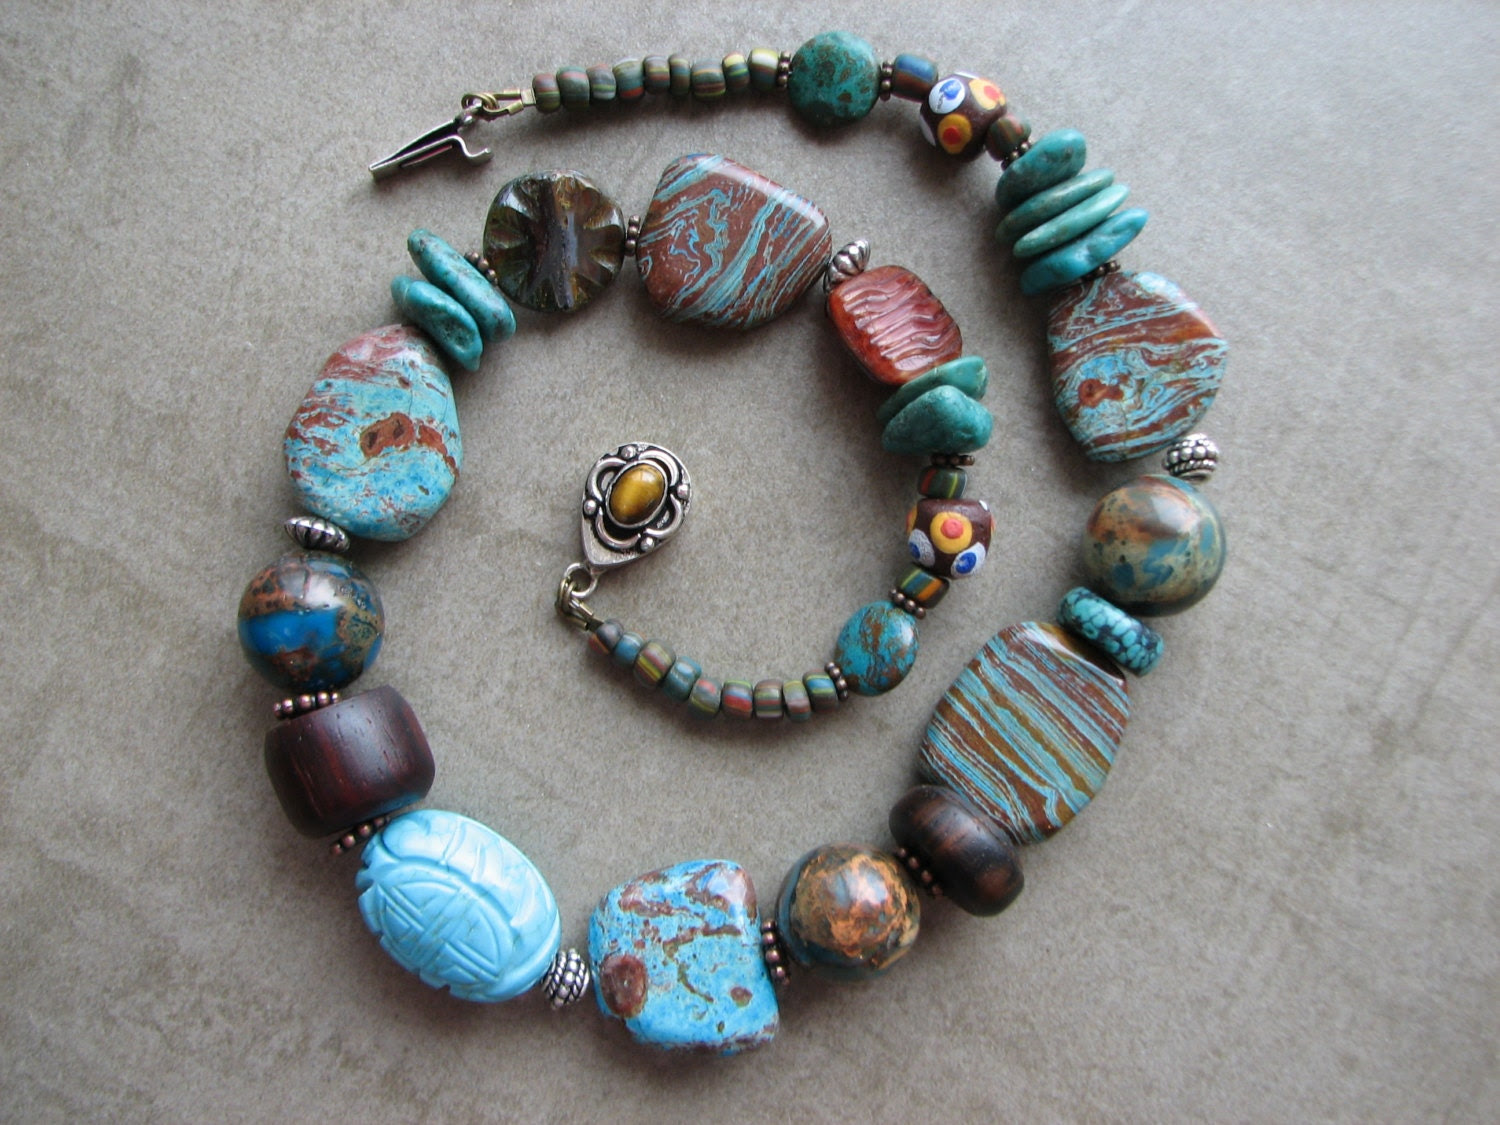 Jasper, Turquoise, Czech Glass, Stripped Ebony Wood, and Chrysilica Necklace, Hippie, Bohemian Style - BeYouBeautiful